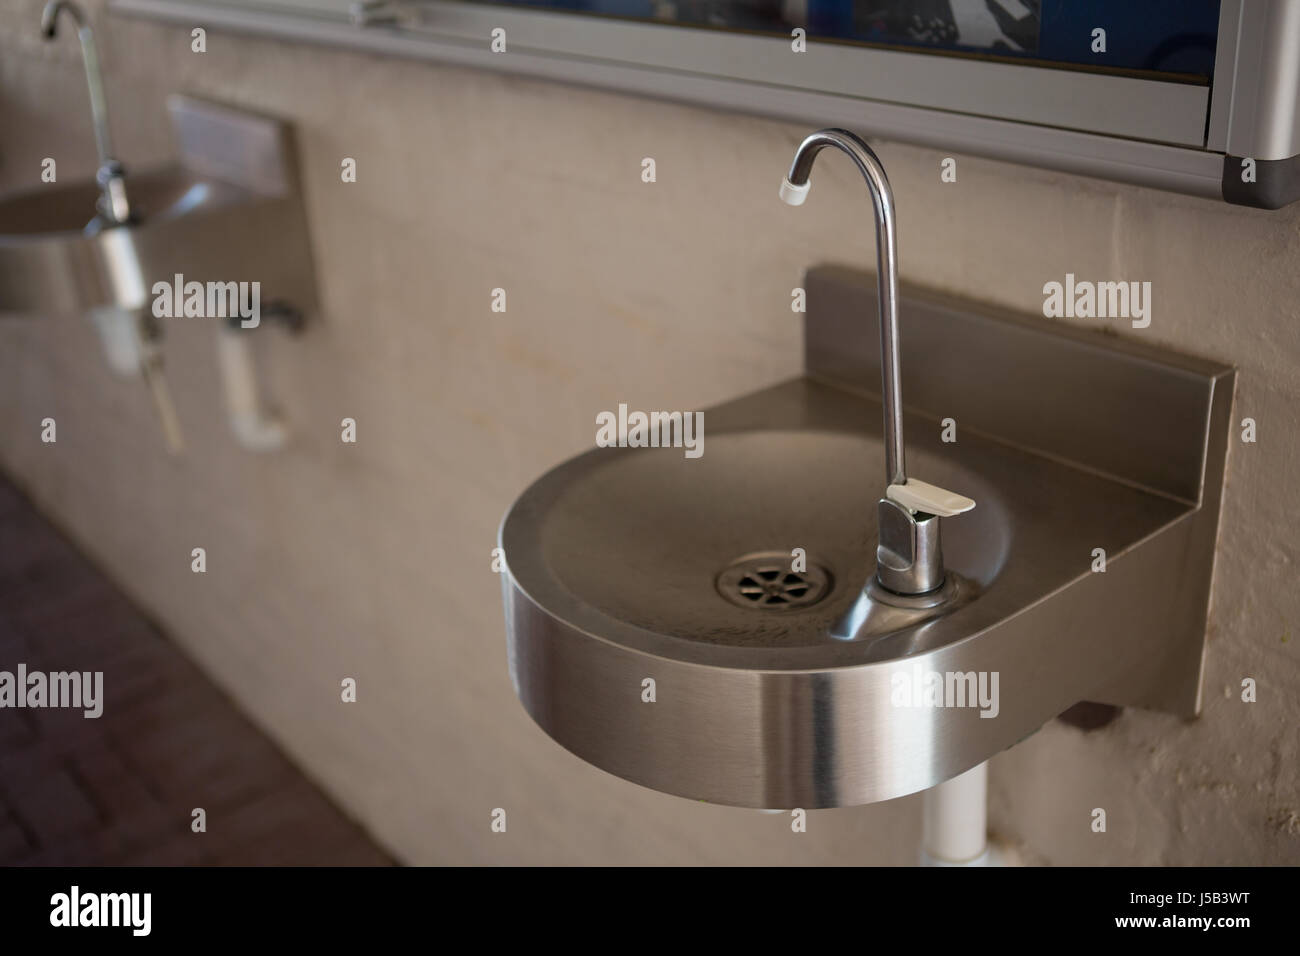 High angle view of drinking water faucet on sink at school Stock Photo